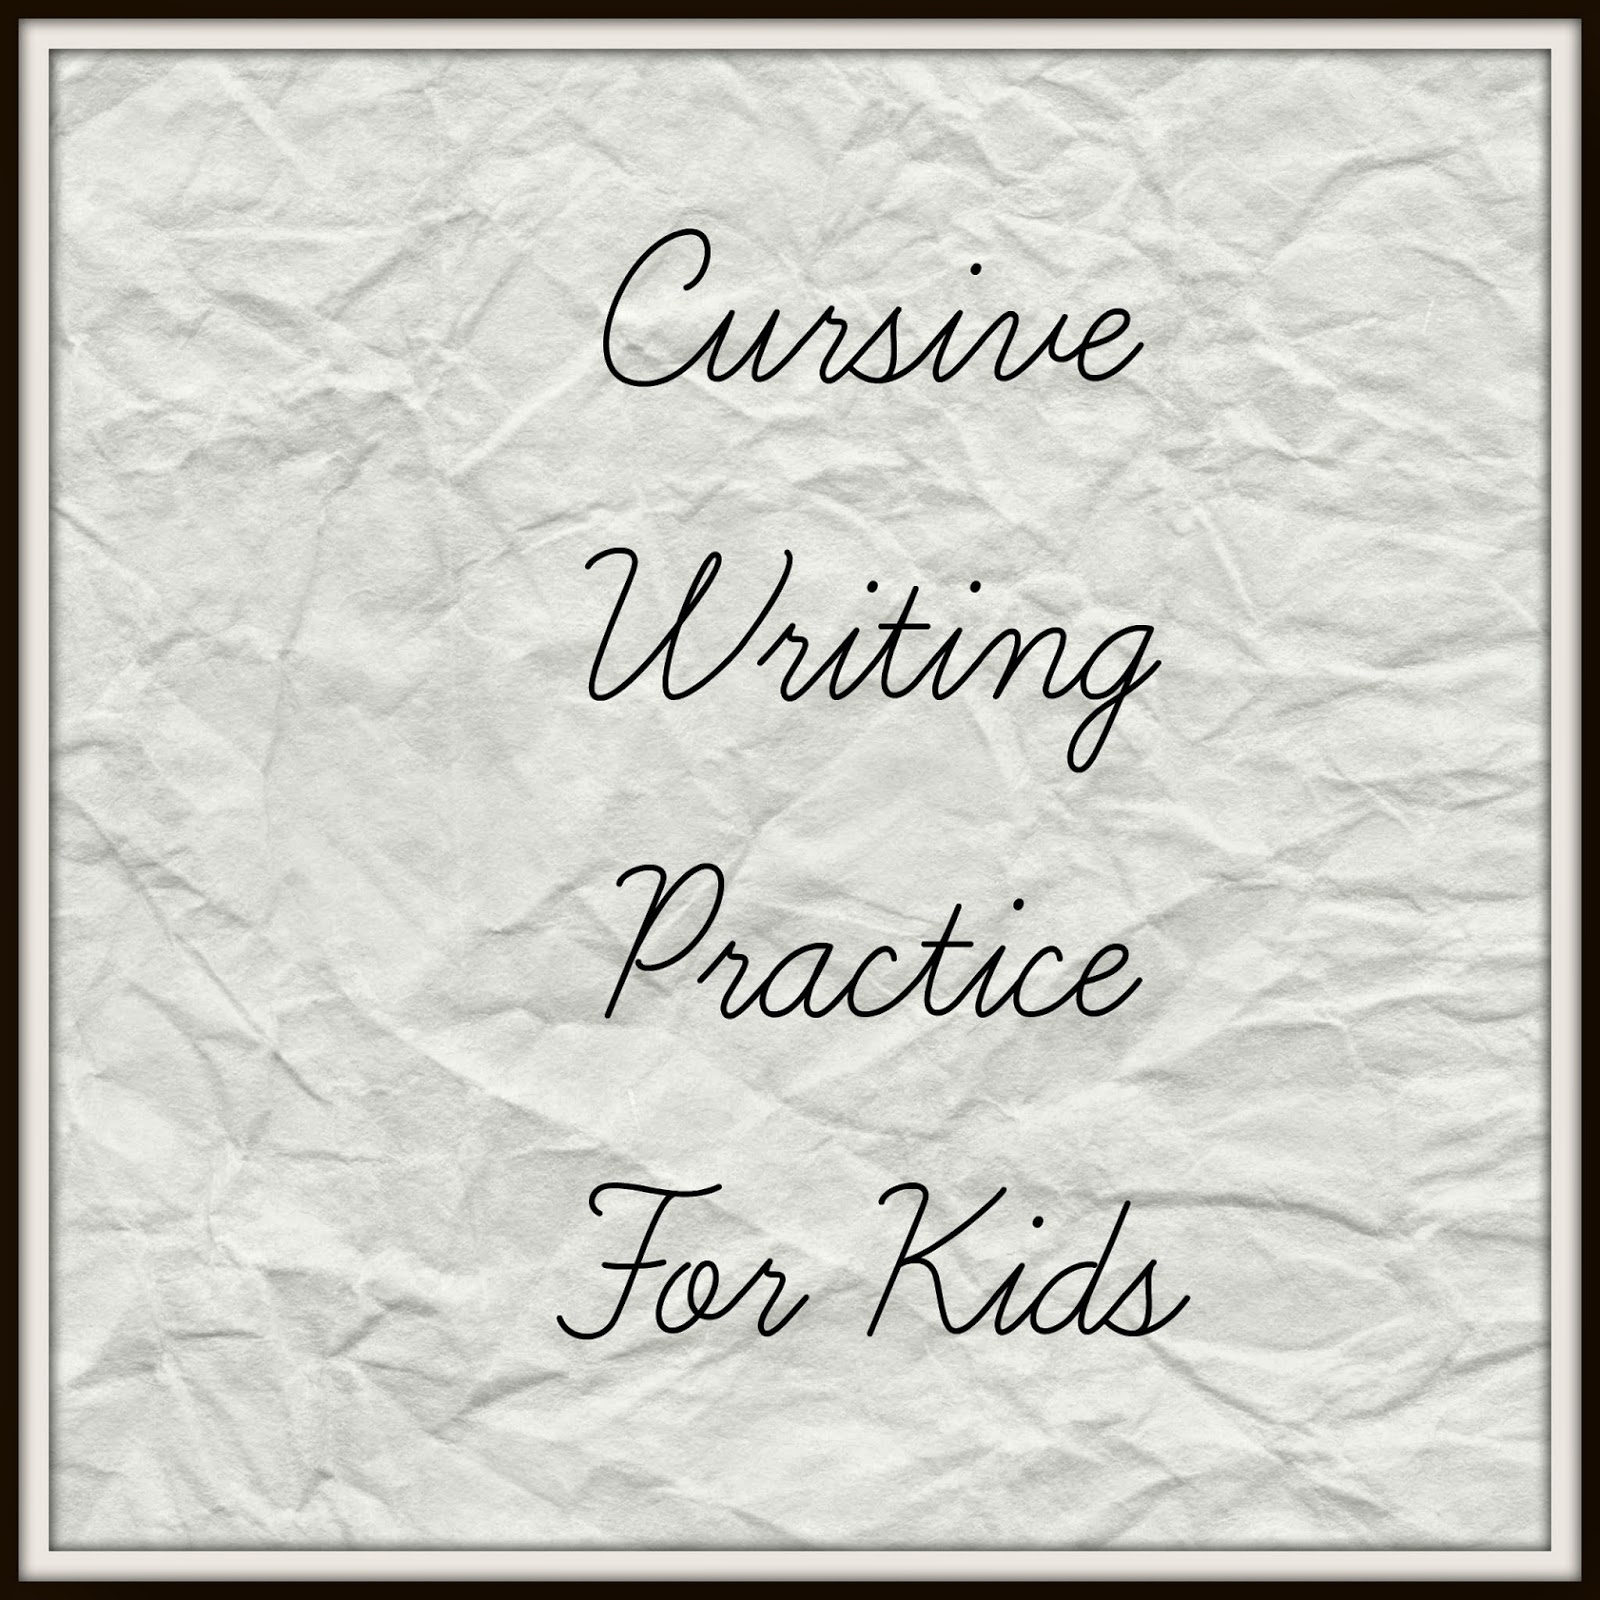 How To Write Cursive Writing For Kids Video And Apps For Iphone And Ipad Parenting Times